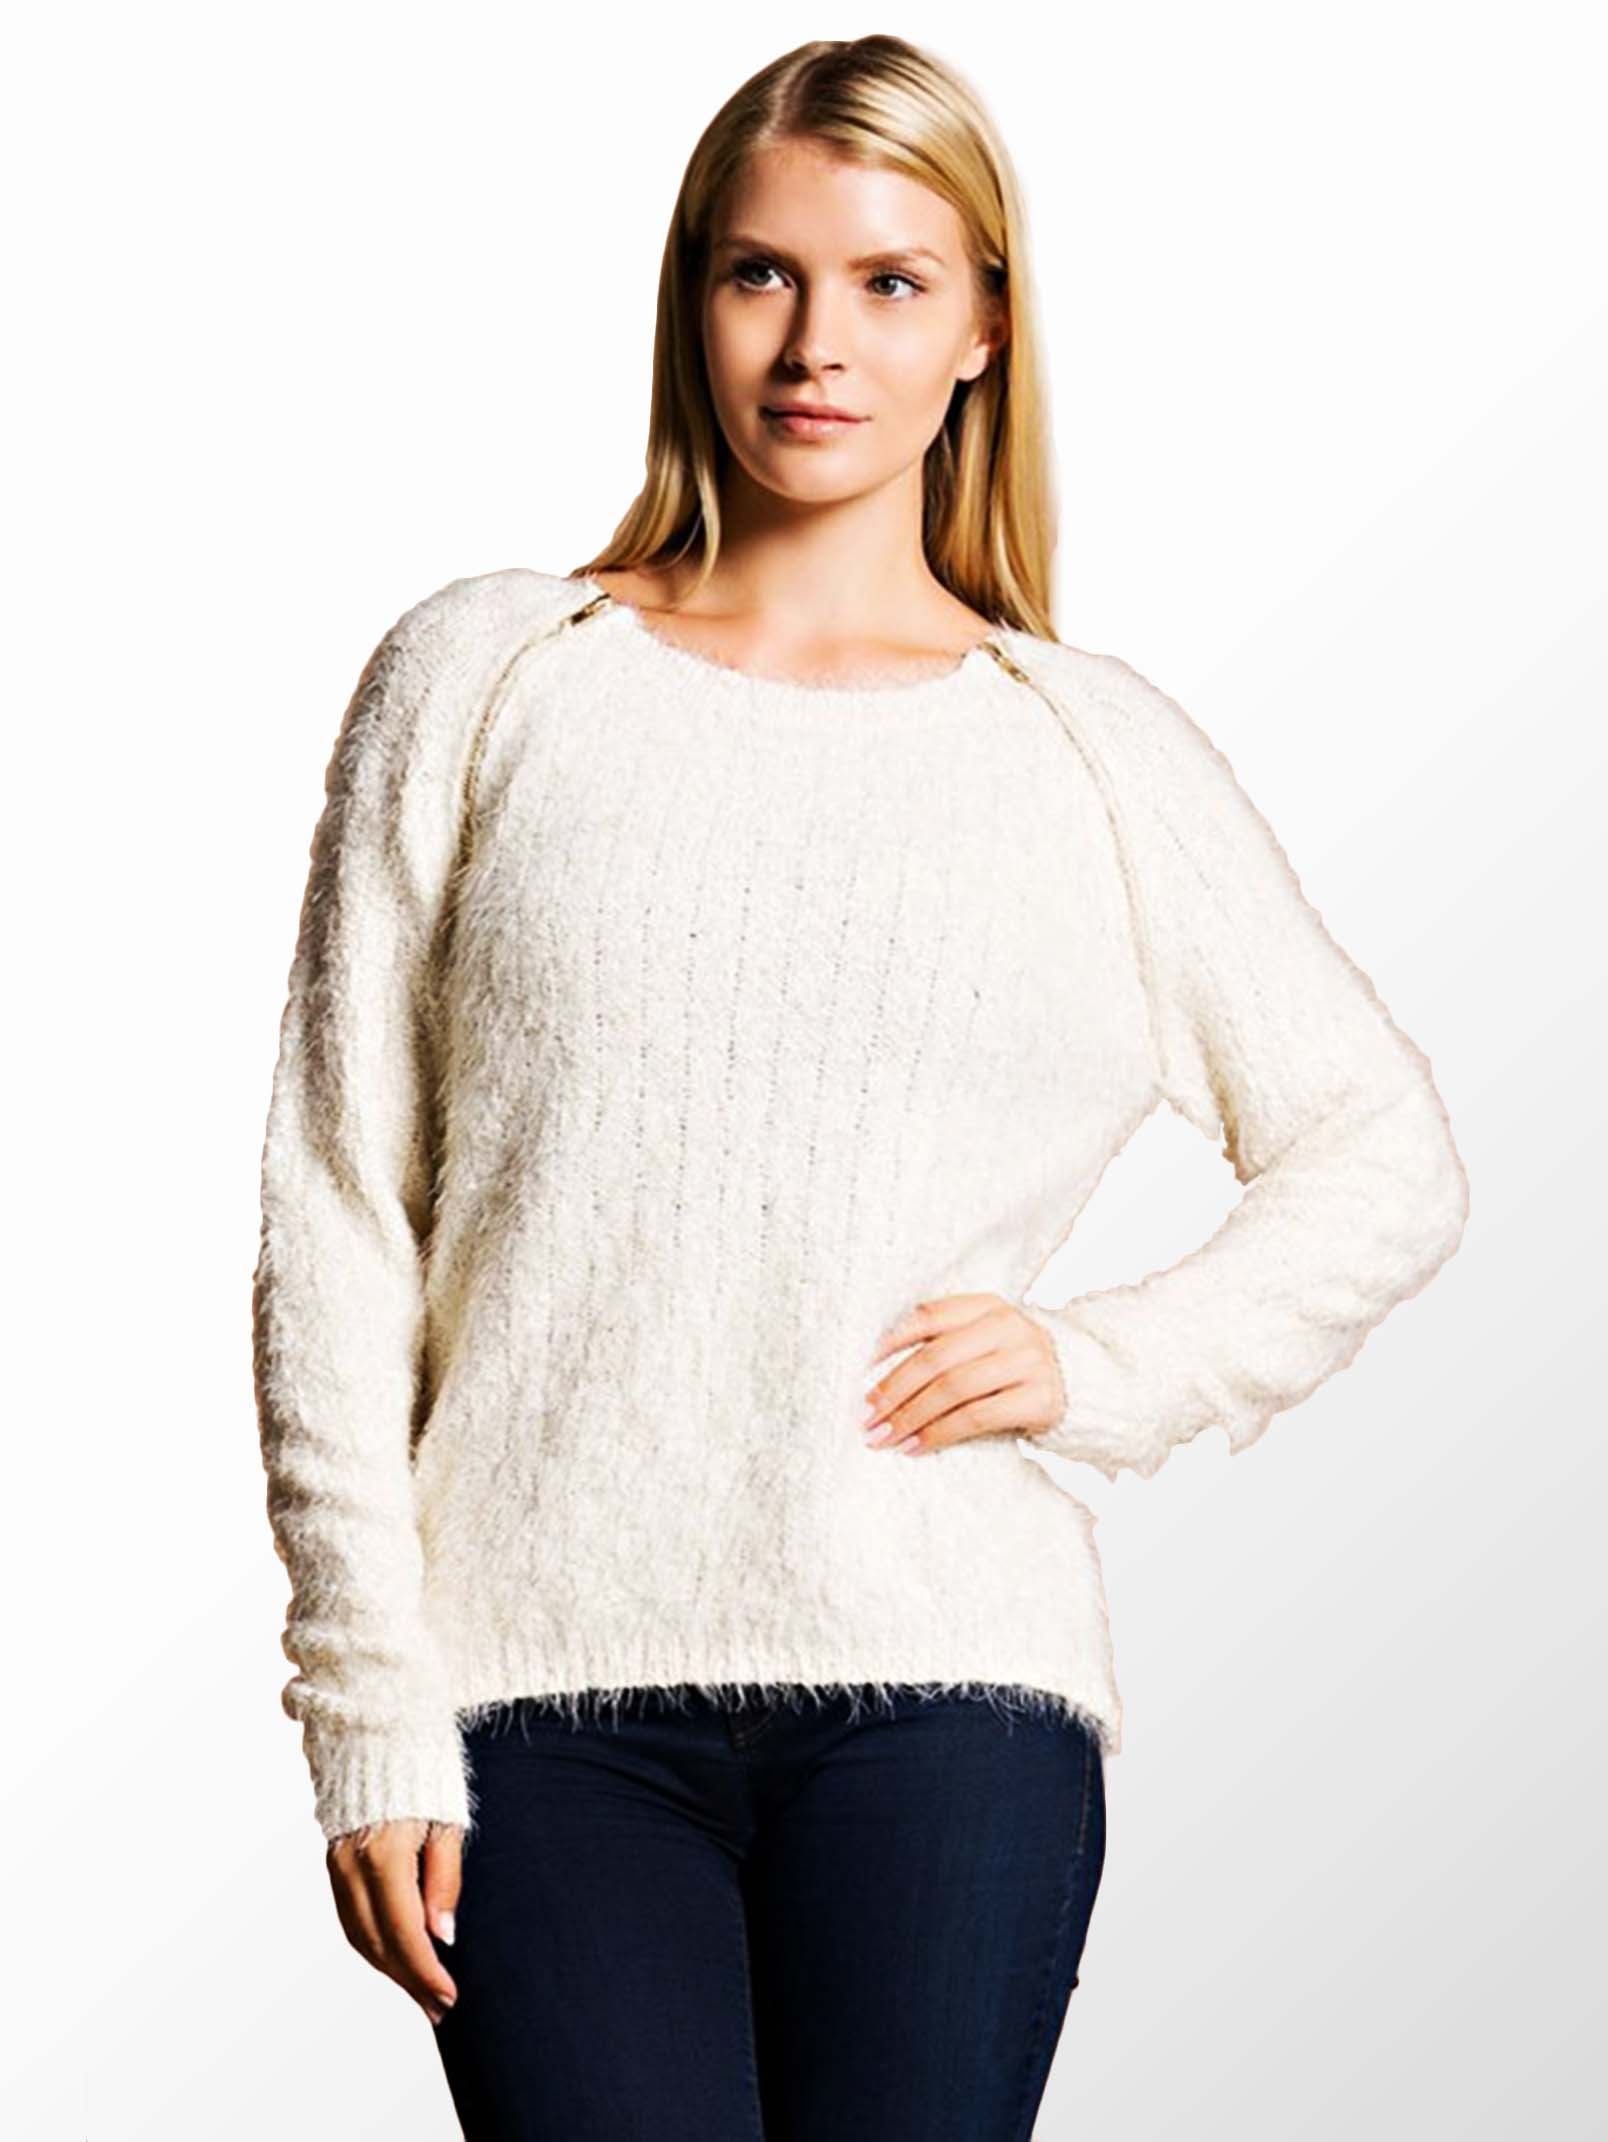 Hot & Delicious Beige Long Sleeve Fuzzy Sweater - ModishOnline.com